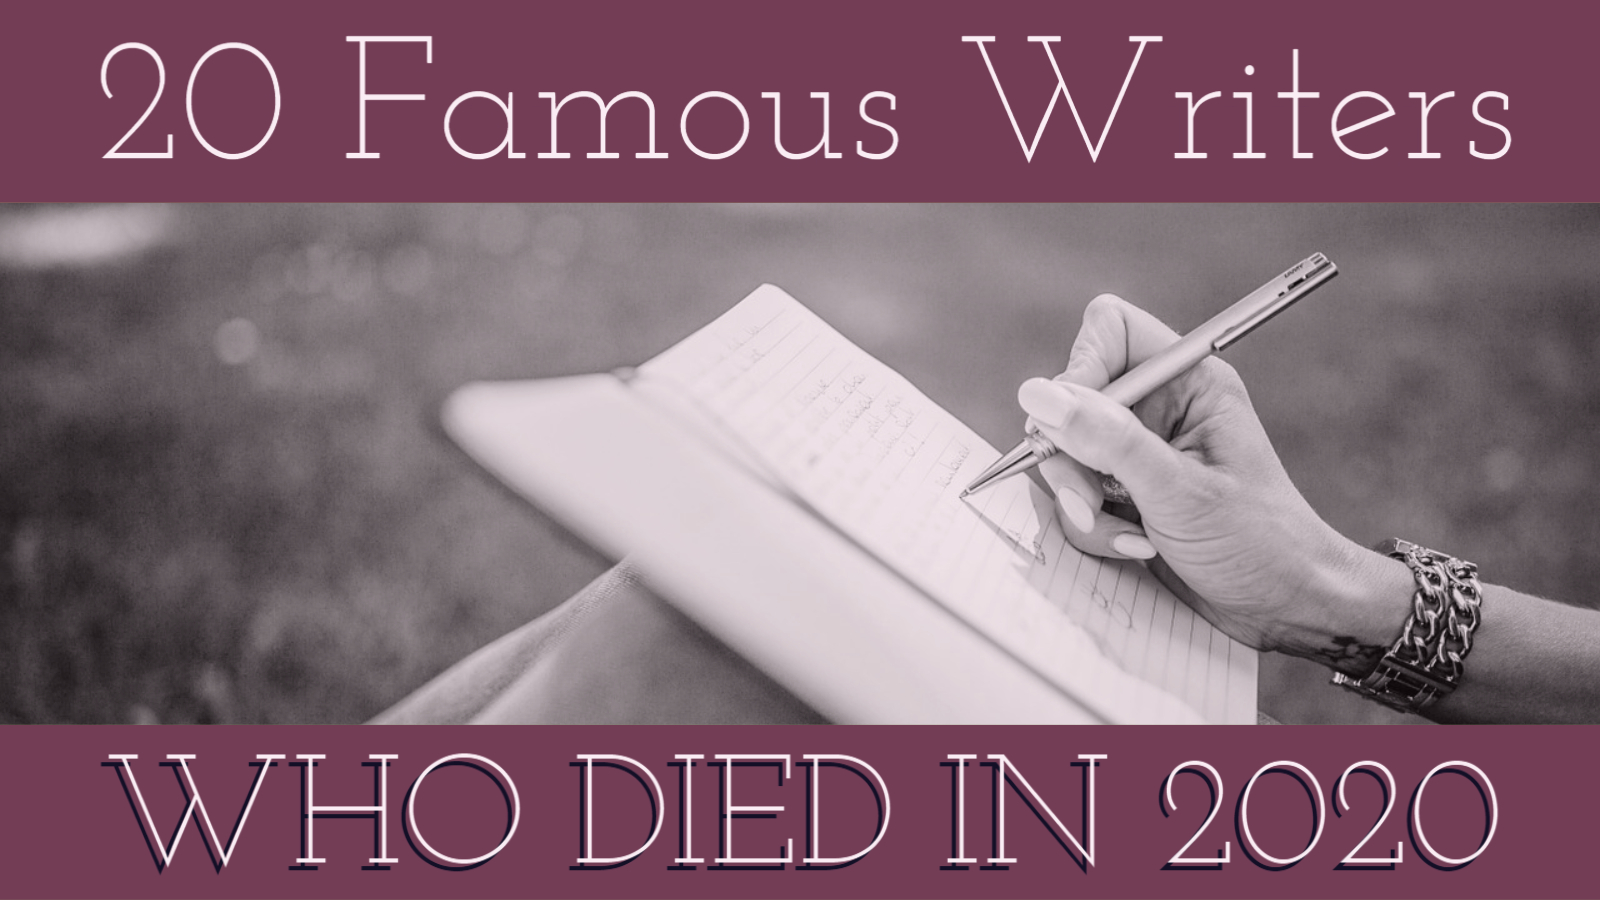 20 Famous Writers Who Died In 2020